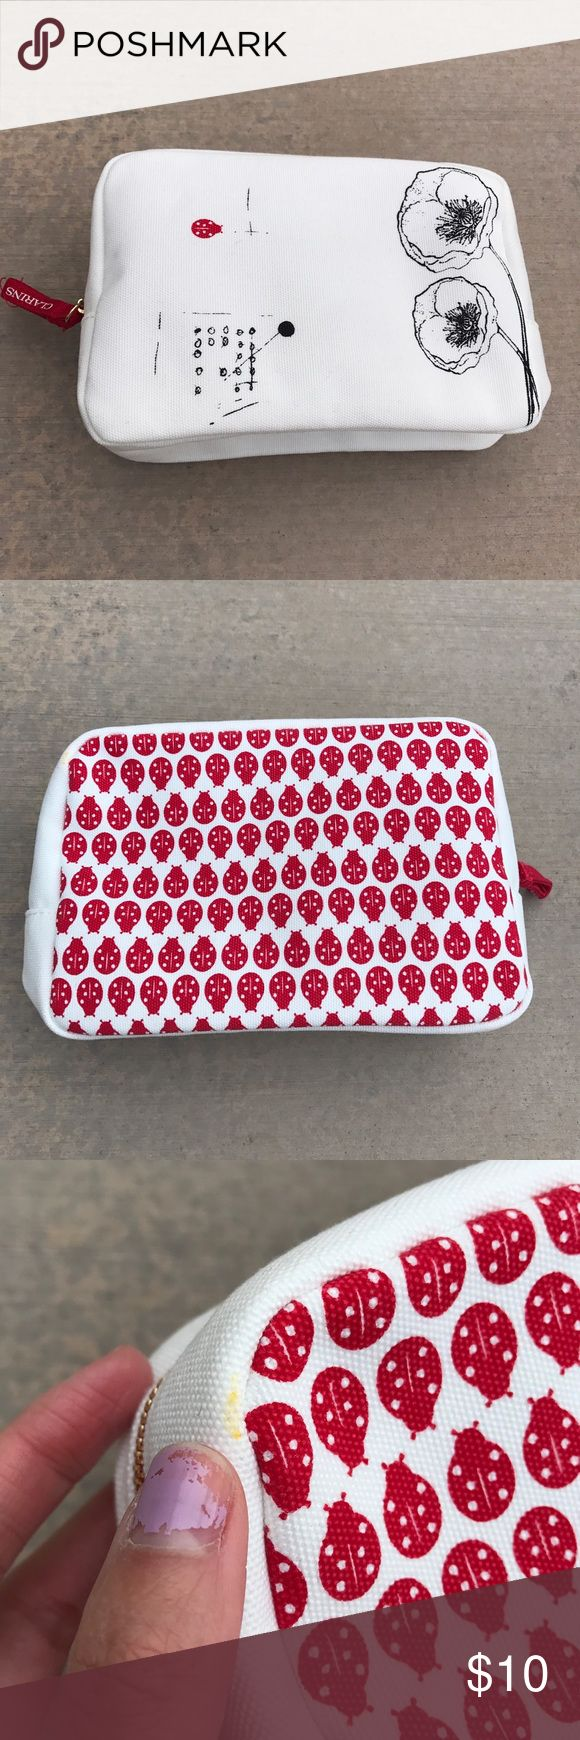 Clarins Ladybug Makeup Bag (NWOT) Canvas material makeup bag with ladybug graphics. Zipper closure. Never been used but has a light stain in one corner. Clarins Bags Cosmetic Bags & Cases